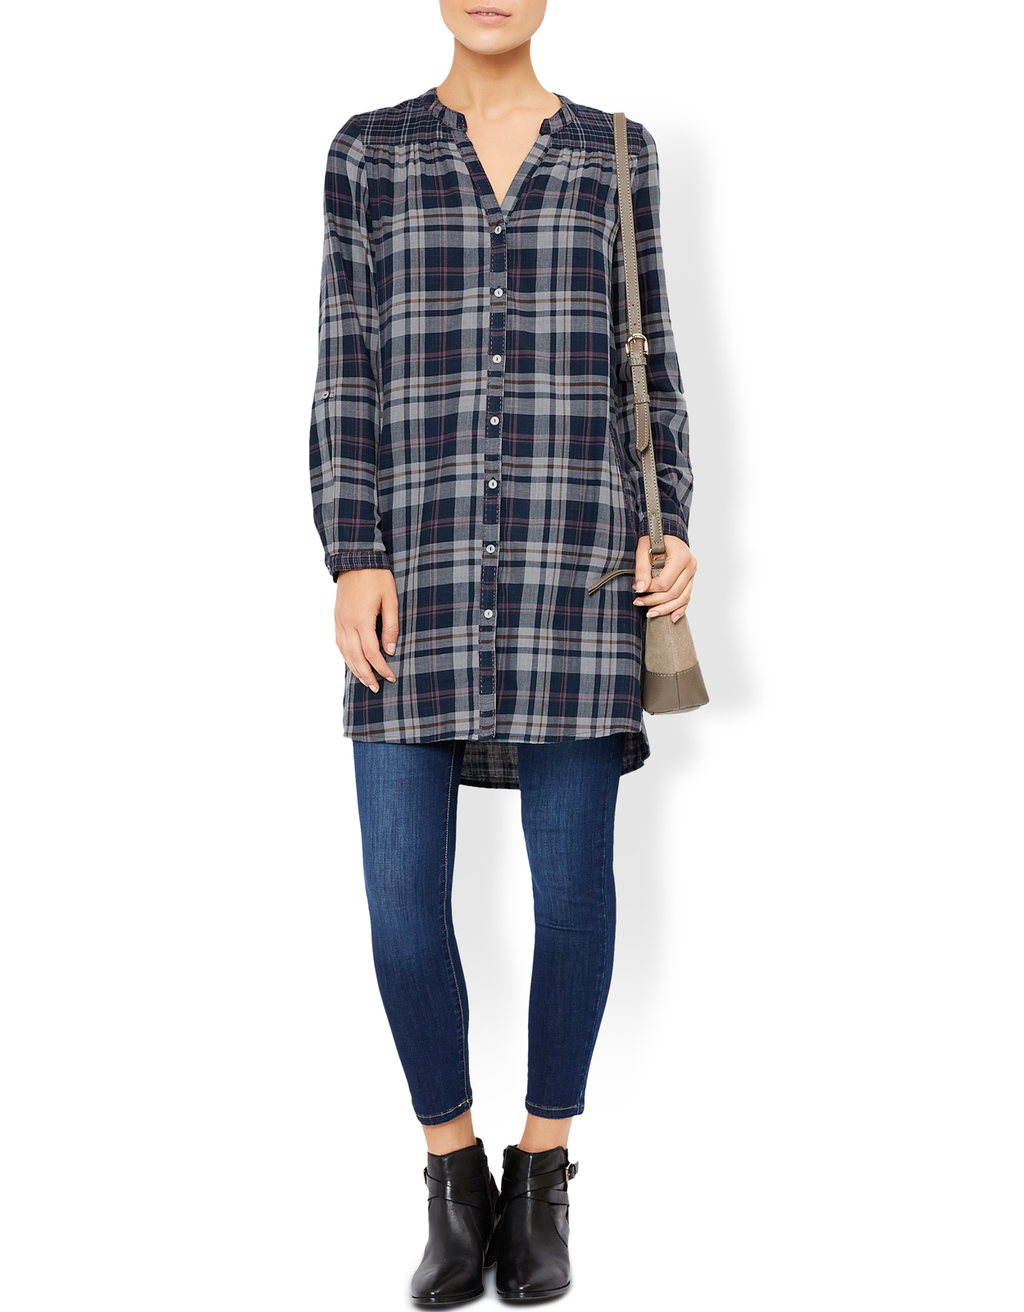 Hope Check Tunic - pattern: checked/gingham; style: tunic; predominant colour: navy; occasions: casual; neckline: collarstand & mandarin with v-neck; fibres: cotton - 100%; fit: loose; length: mid thigh; sleeve length: long sleeve; sleeve style: standard; pattern type: fabric; texture group: jersey - stretchy/drapey; pattern size: big & busy (top); multicoloured: multicoloured; season: a/w 2016; wardrobe: highlight